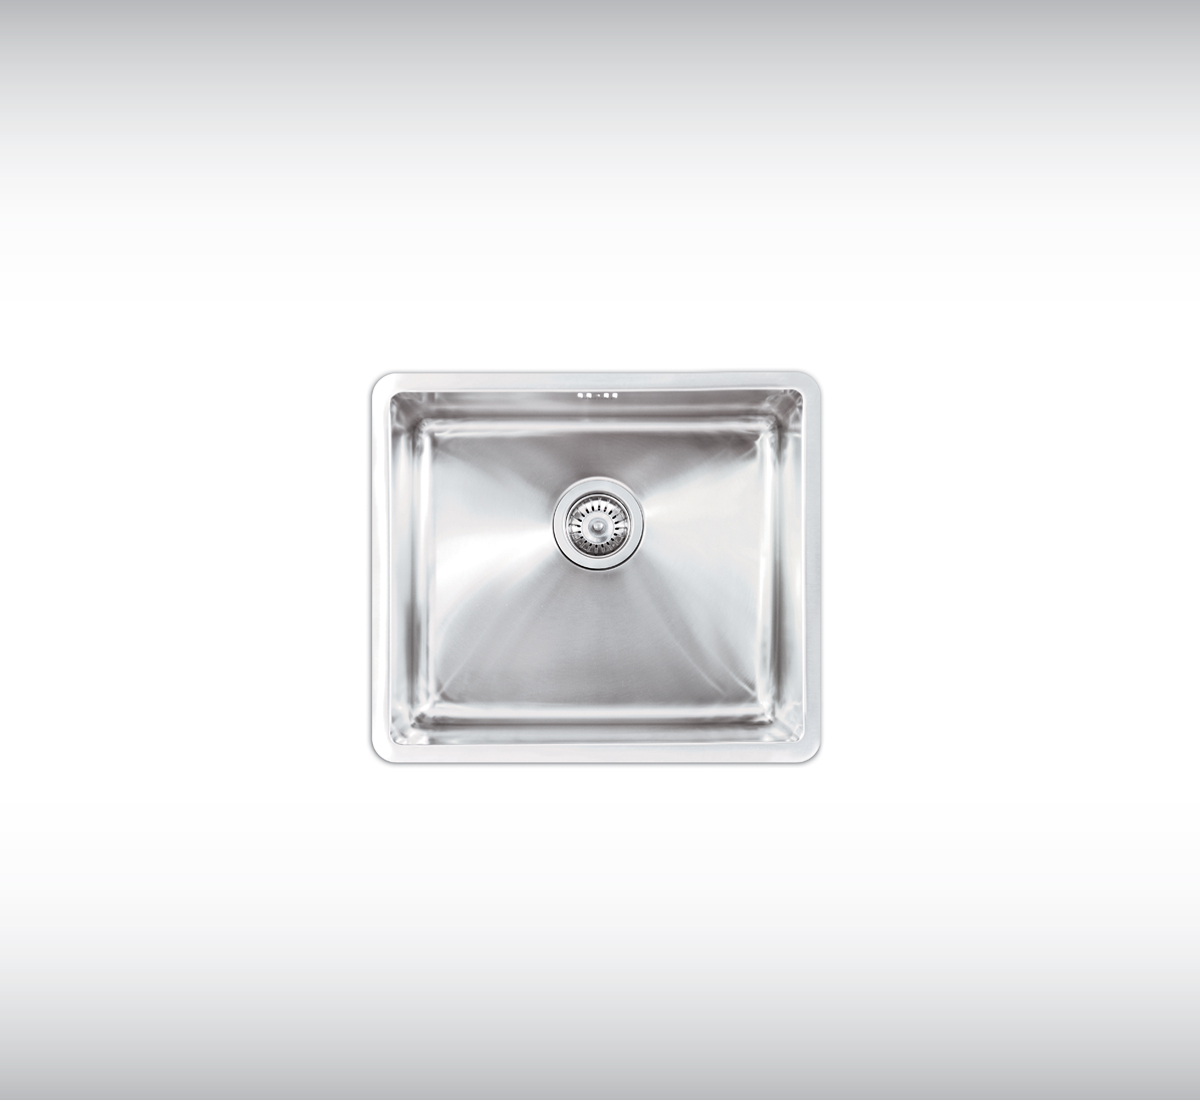 Stainless Steel Sink GINO-544